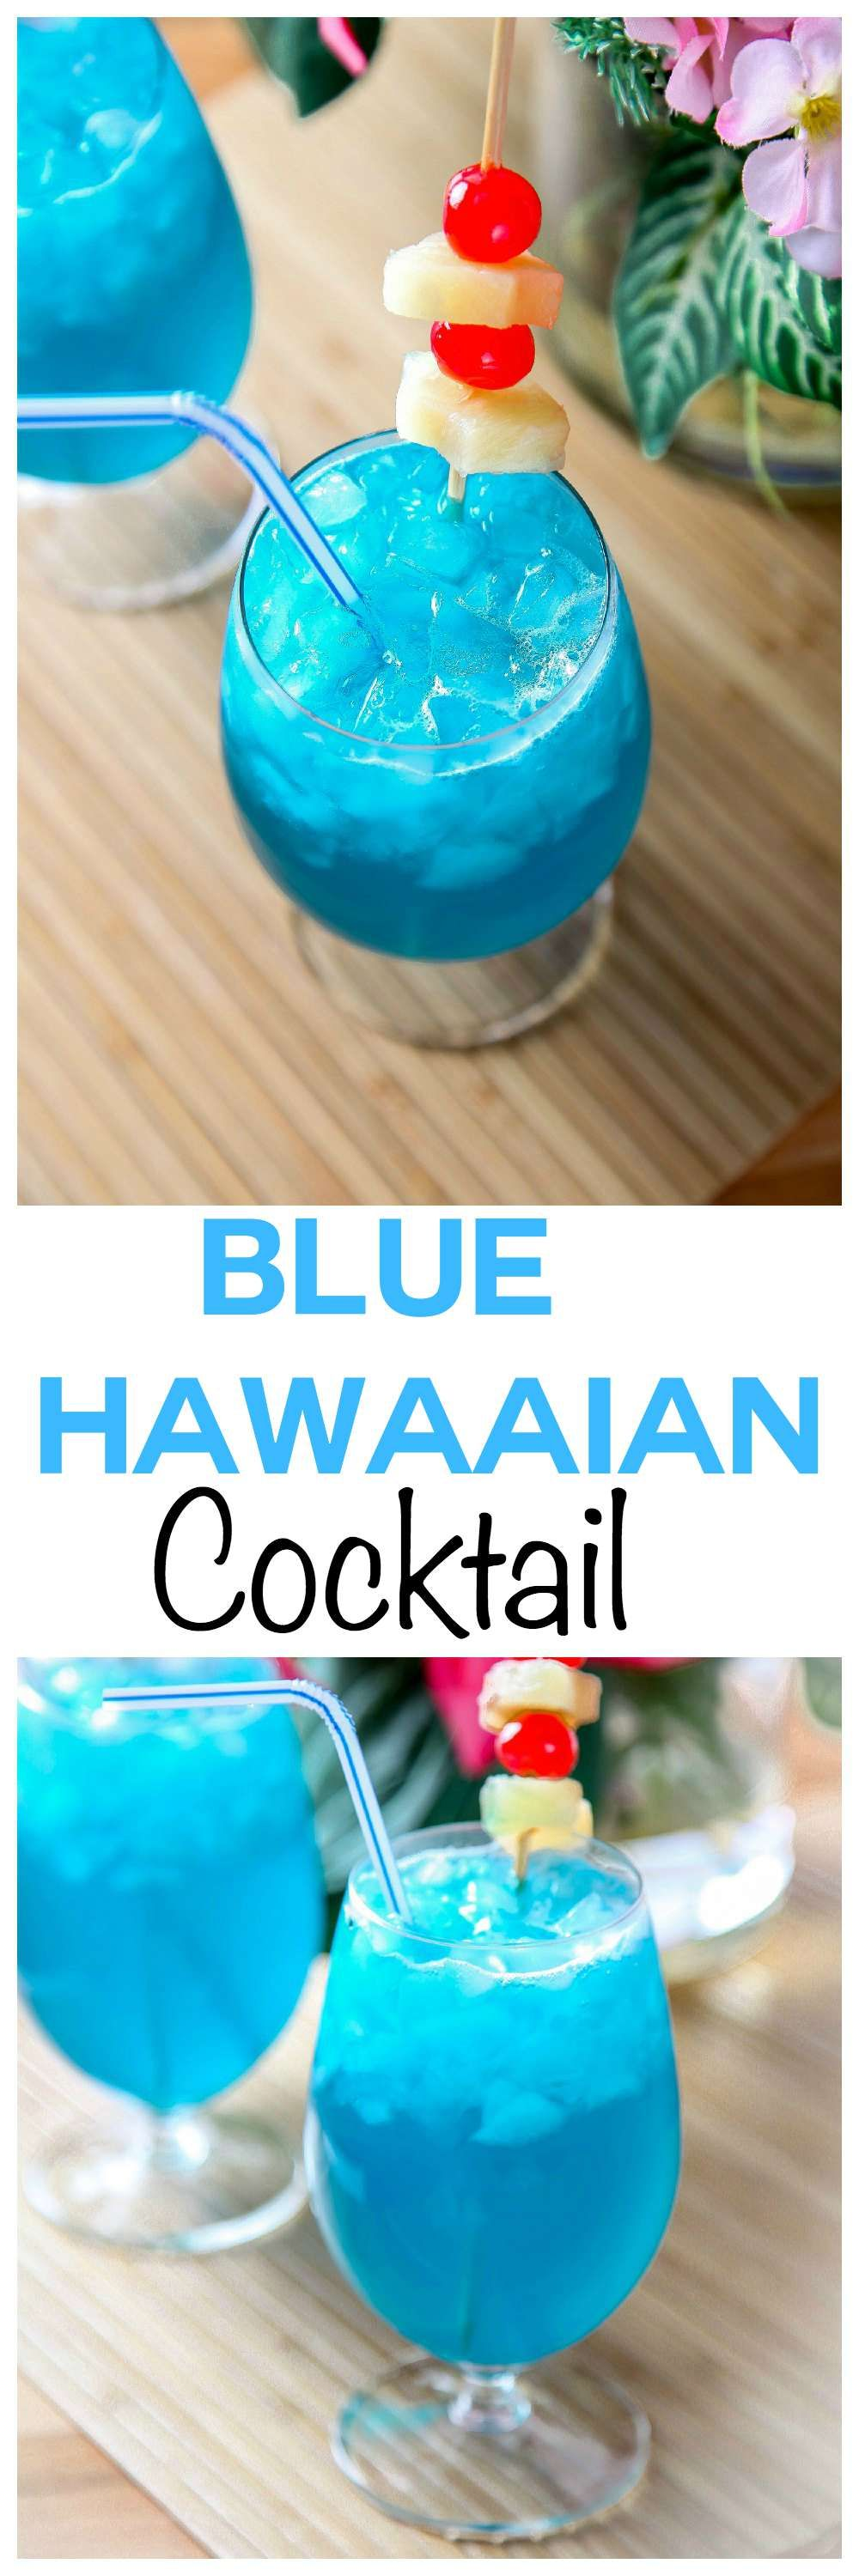 Blue Hawaiian Cocktail: Transport Yourself With This